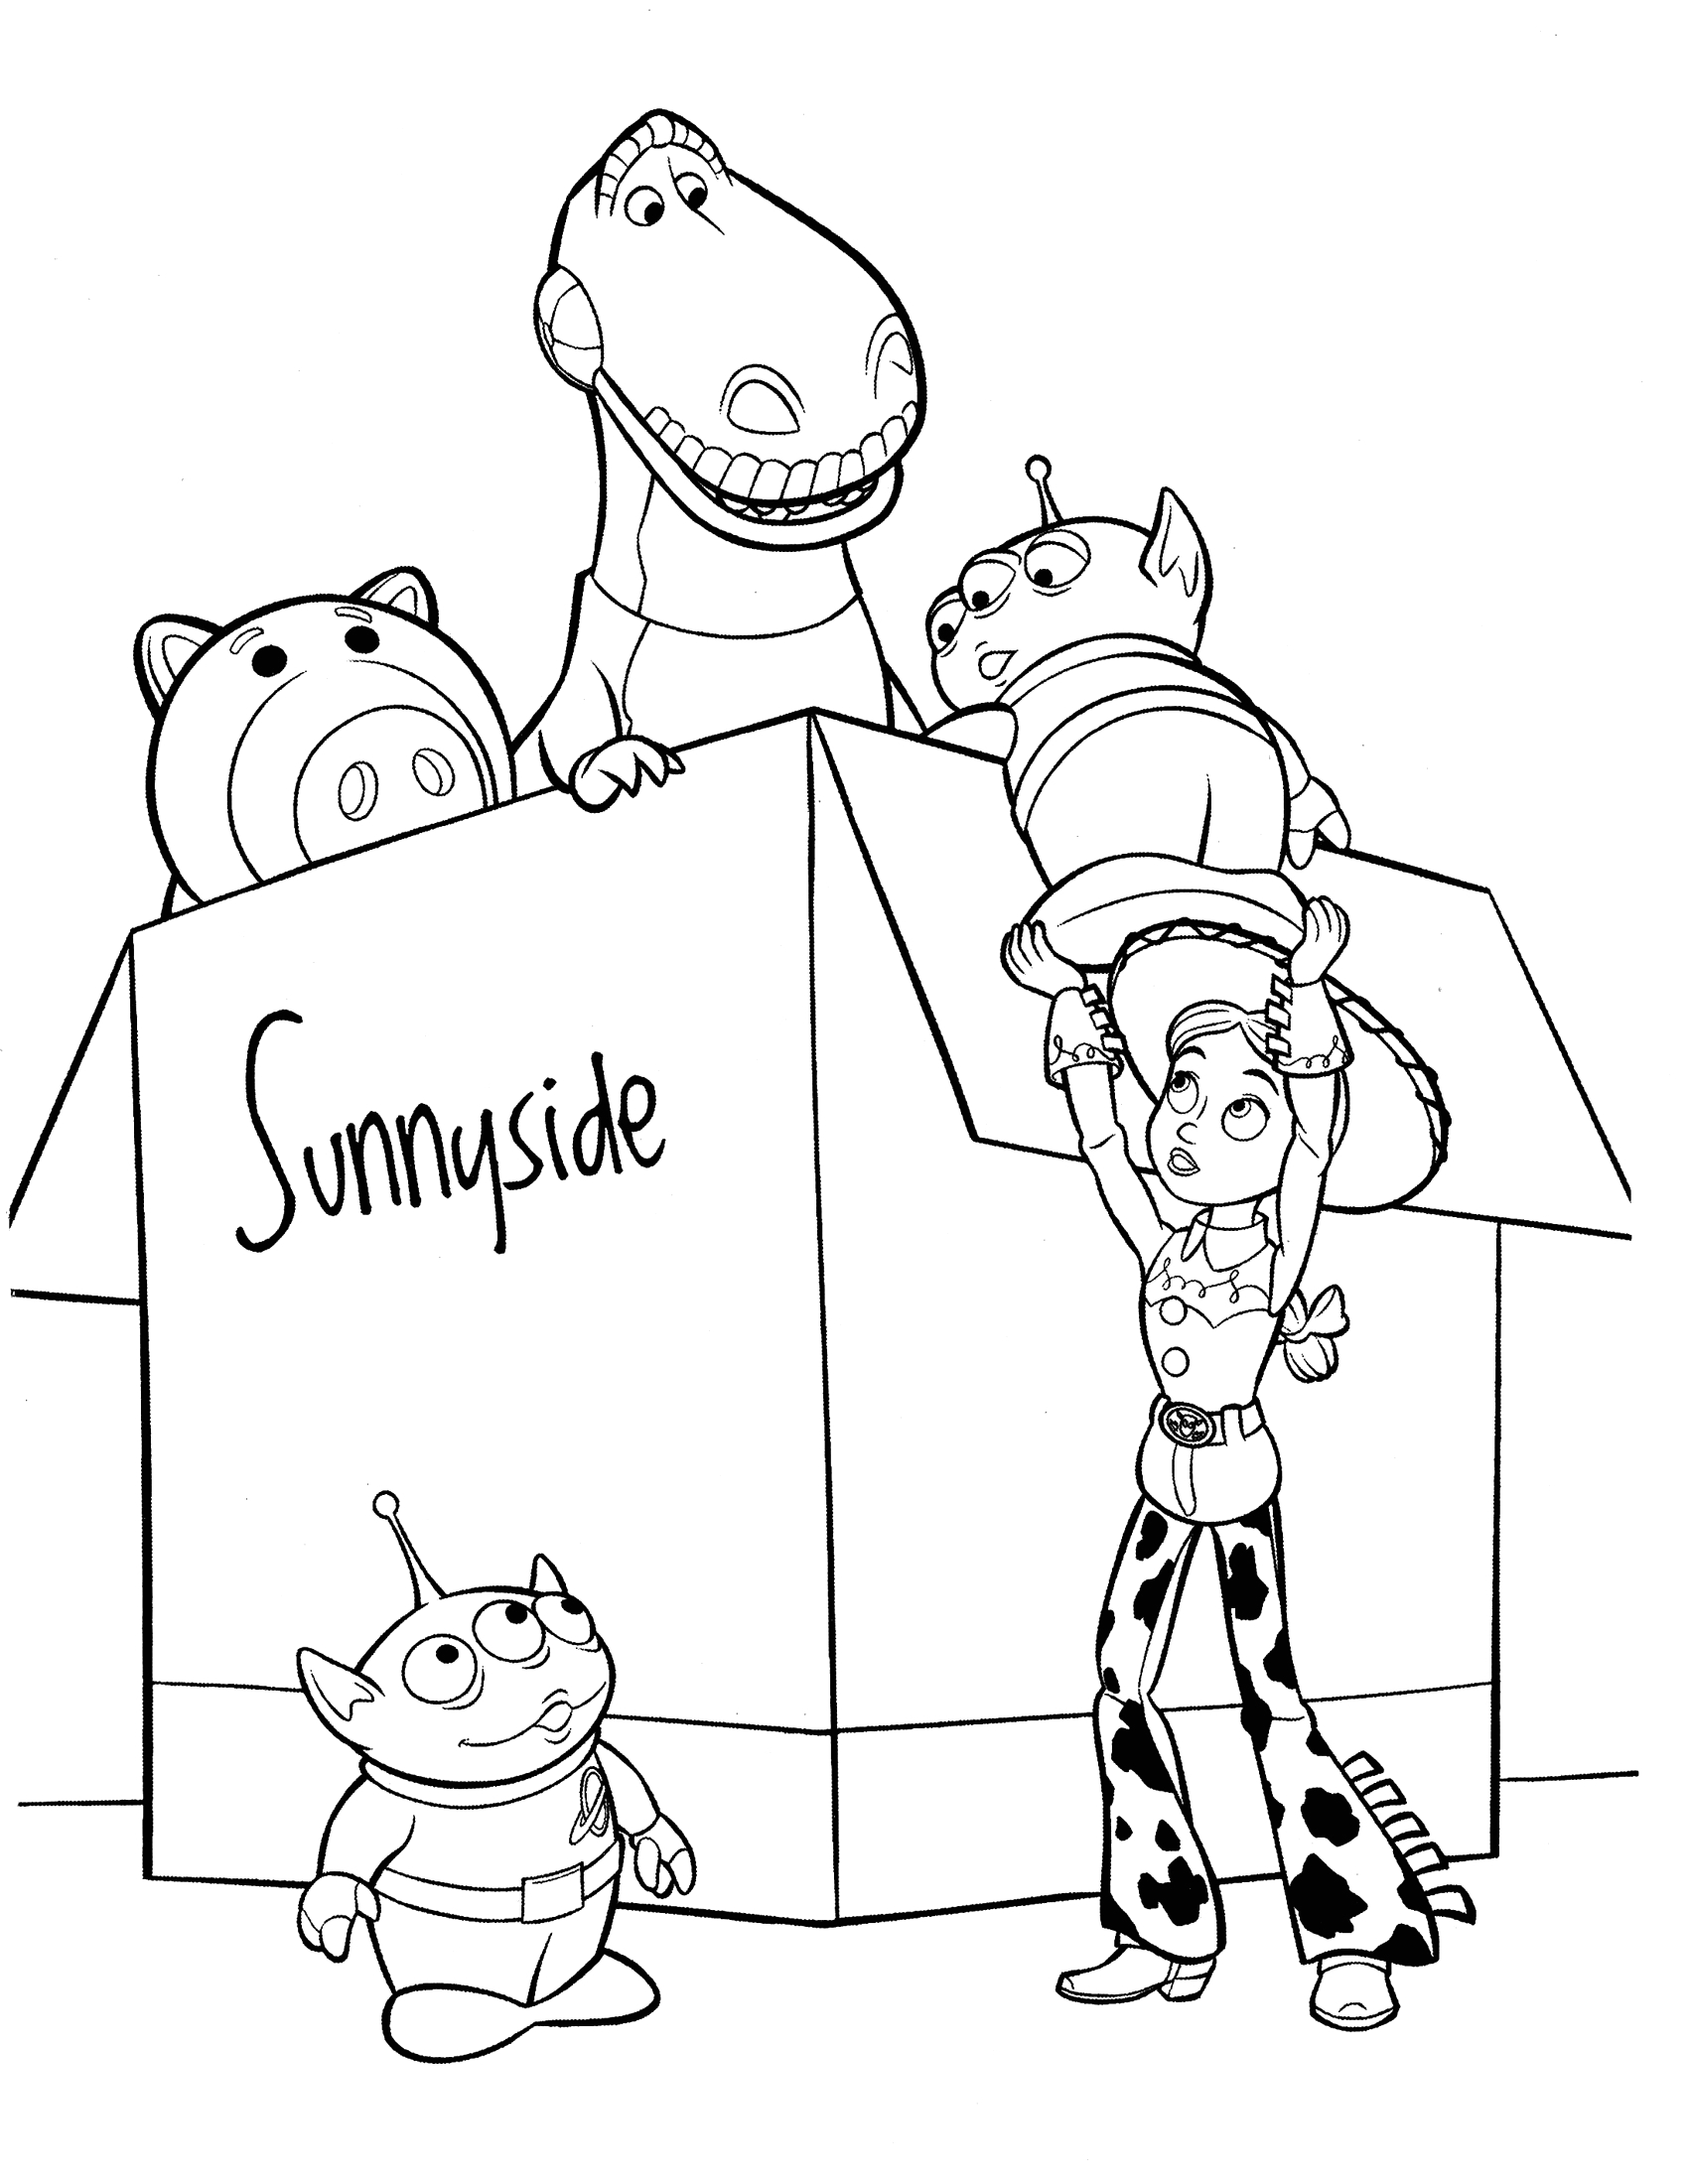 Free Printable toy Story 4 Coloring Pages toy Story 4 Coloring Pages Best Coloring Pages for Kids